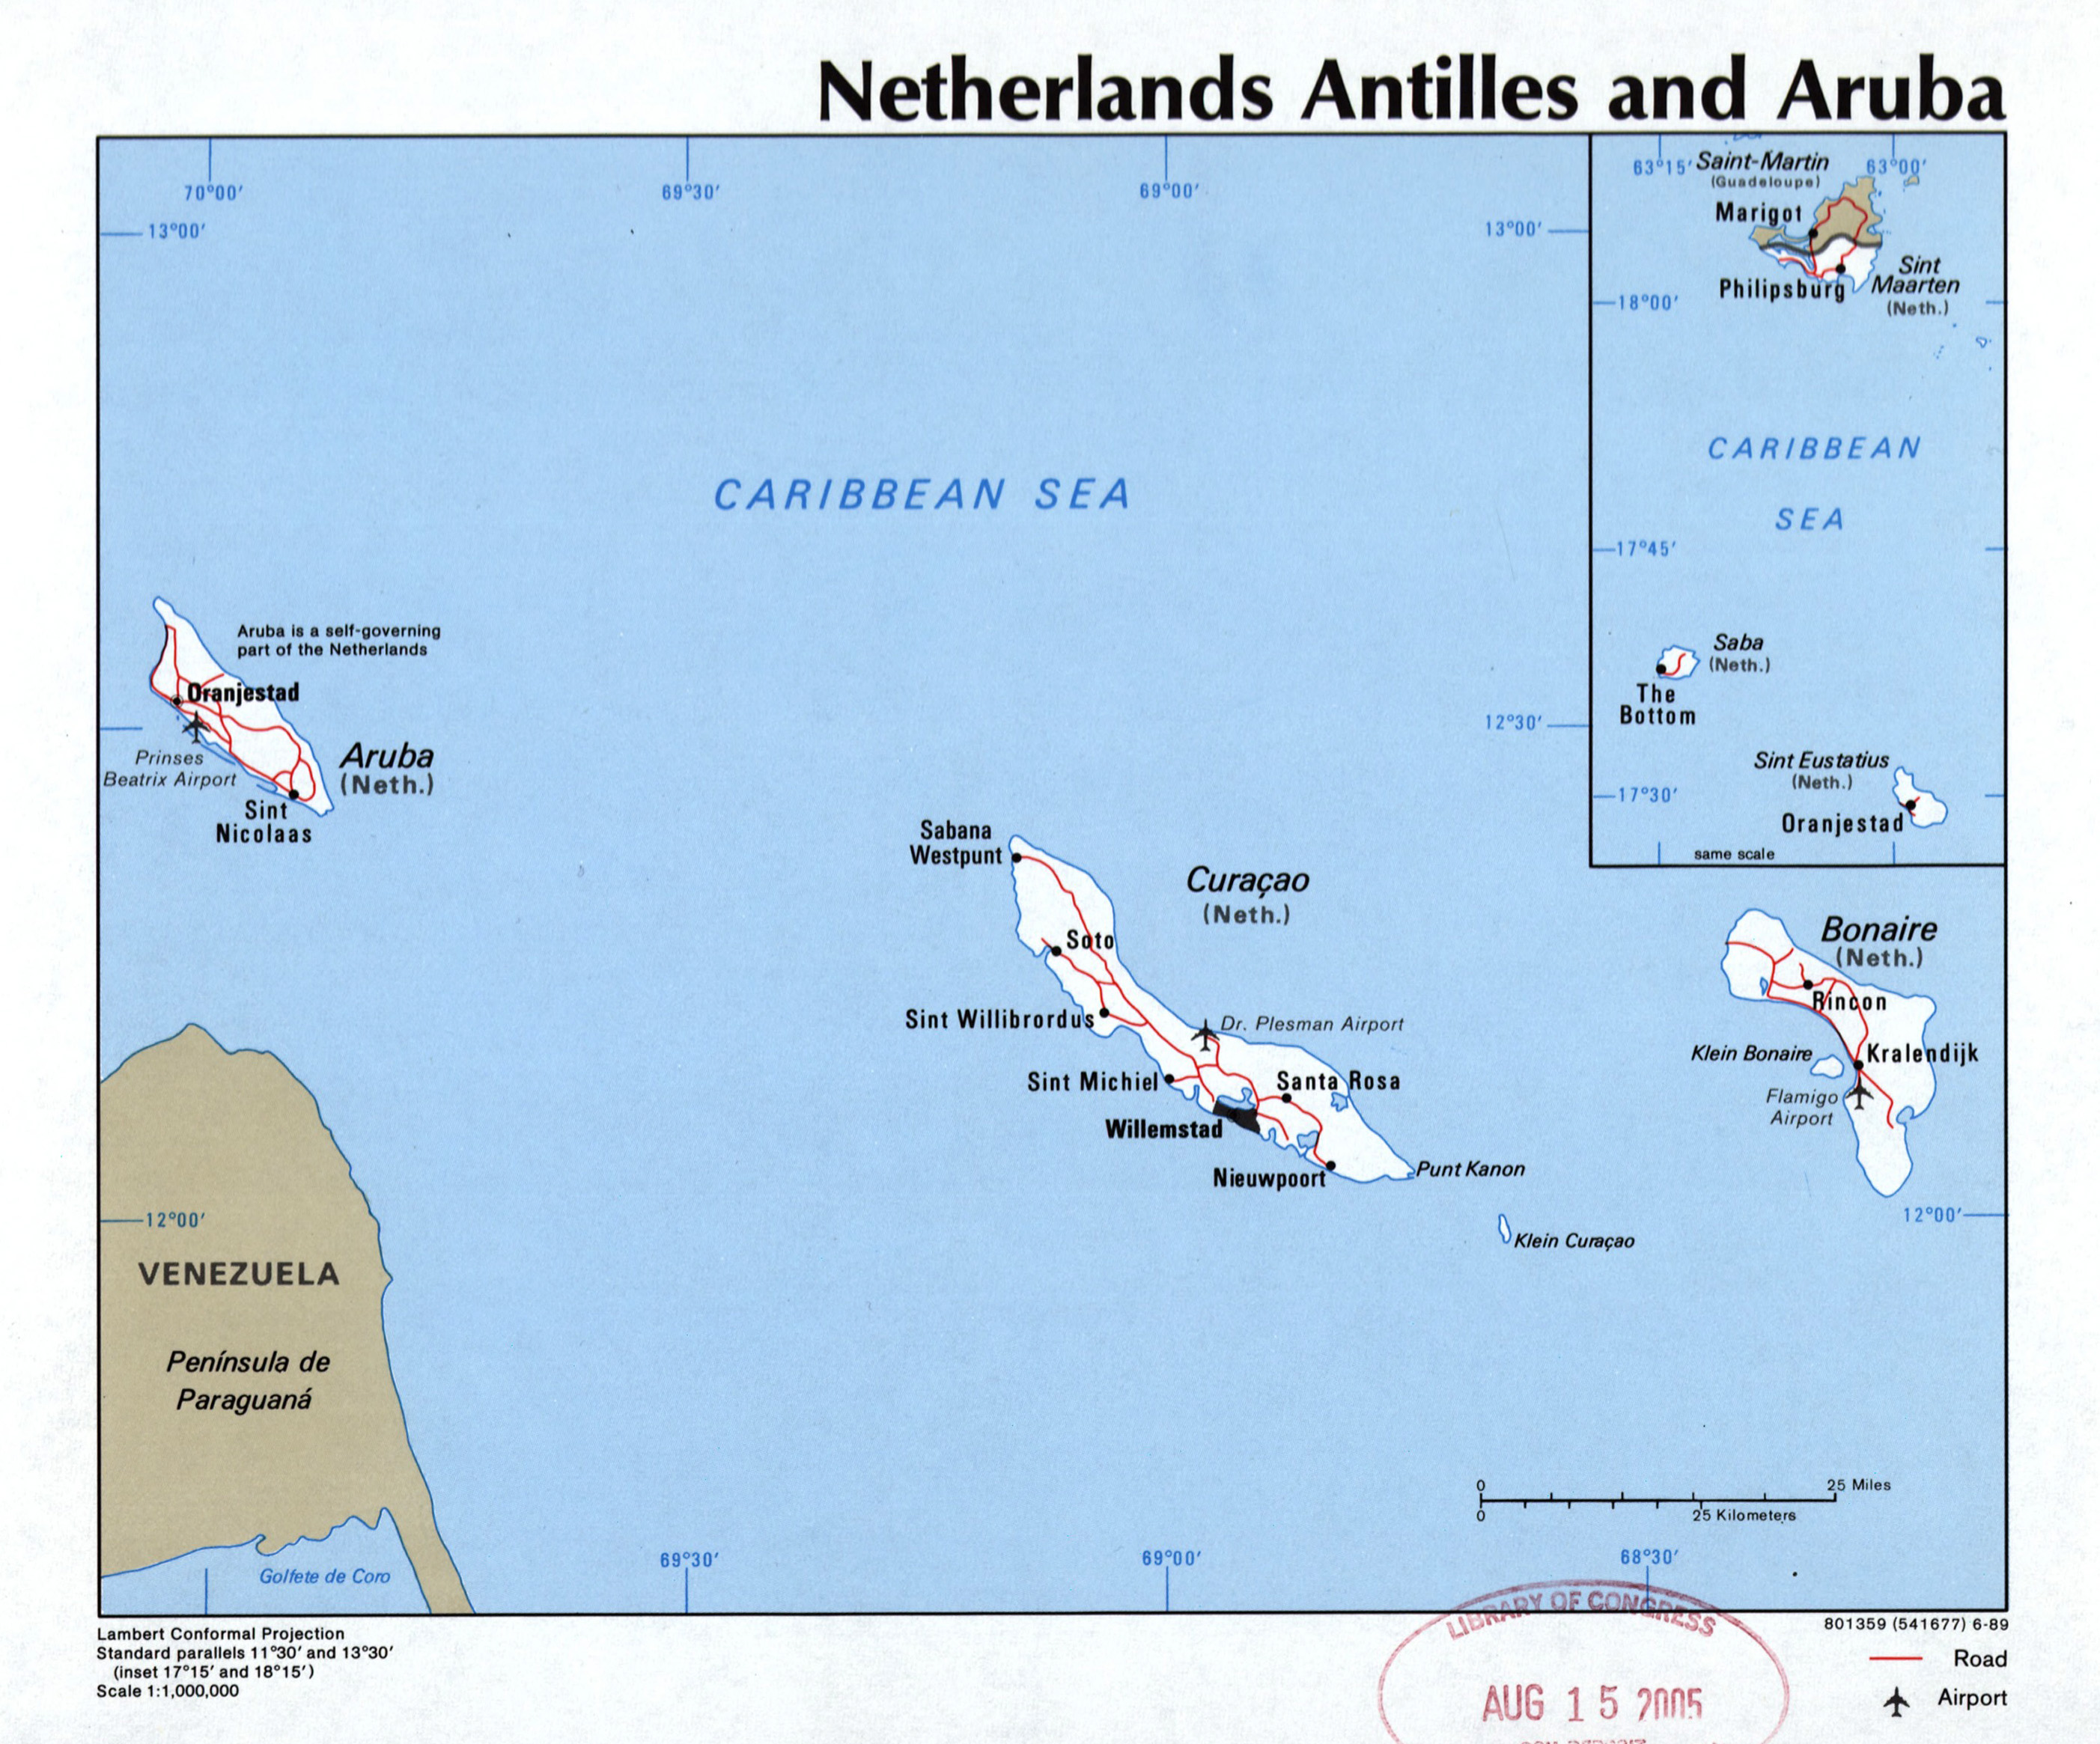 Large Detailed Political Map Of Netherlands Antilles And Aruba - Netherlands antilles aruba political map